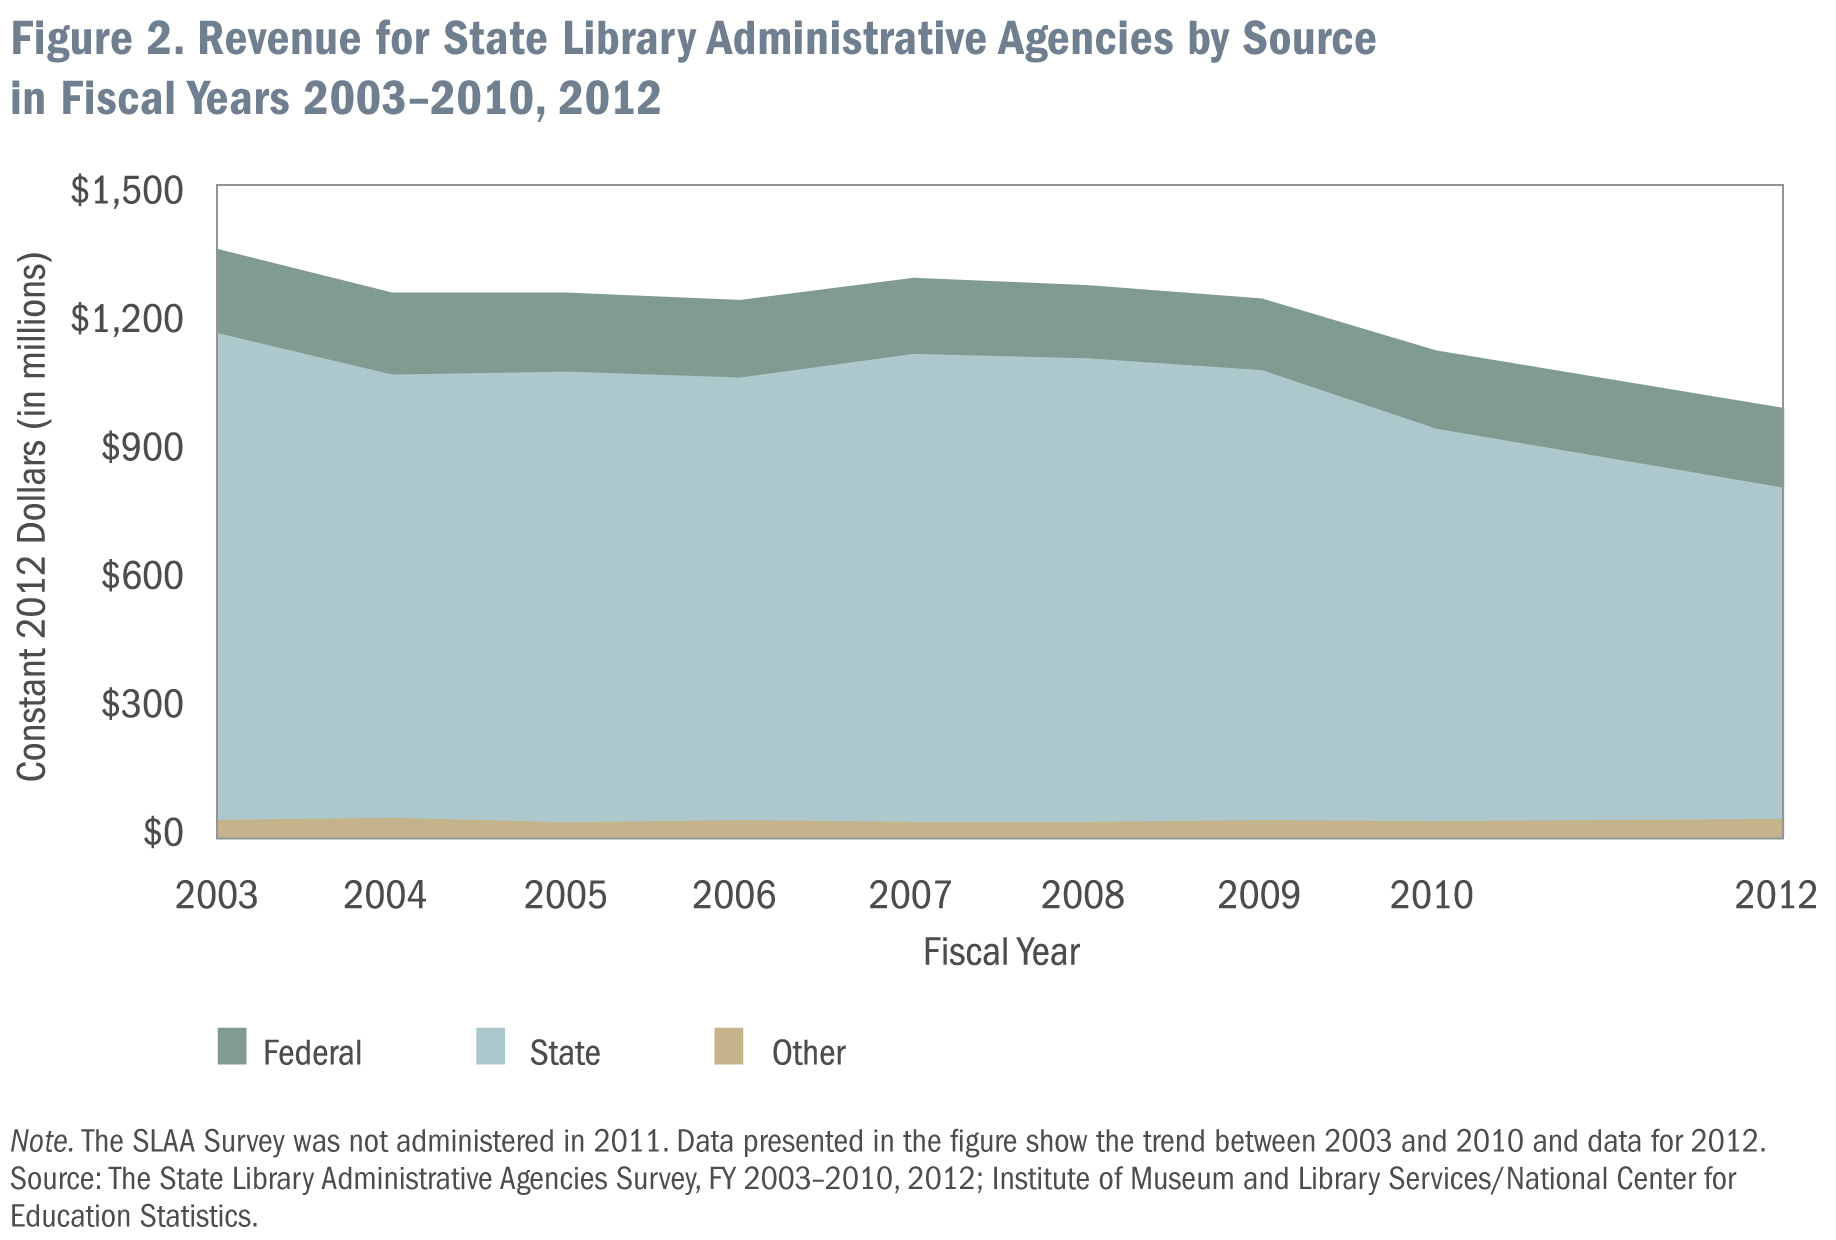 Figure 2: Revenue for State Library Administrative Agencies by Source